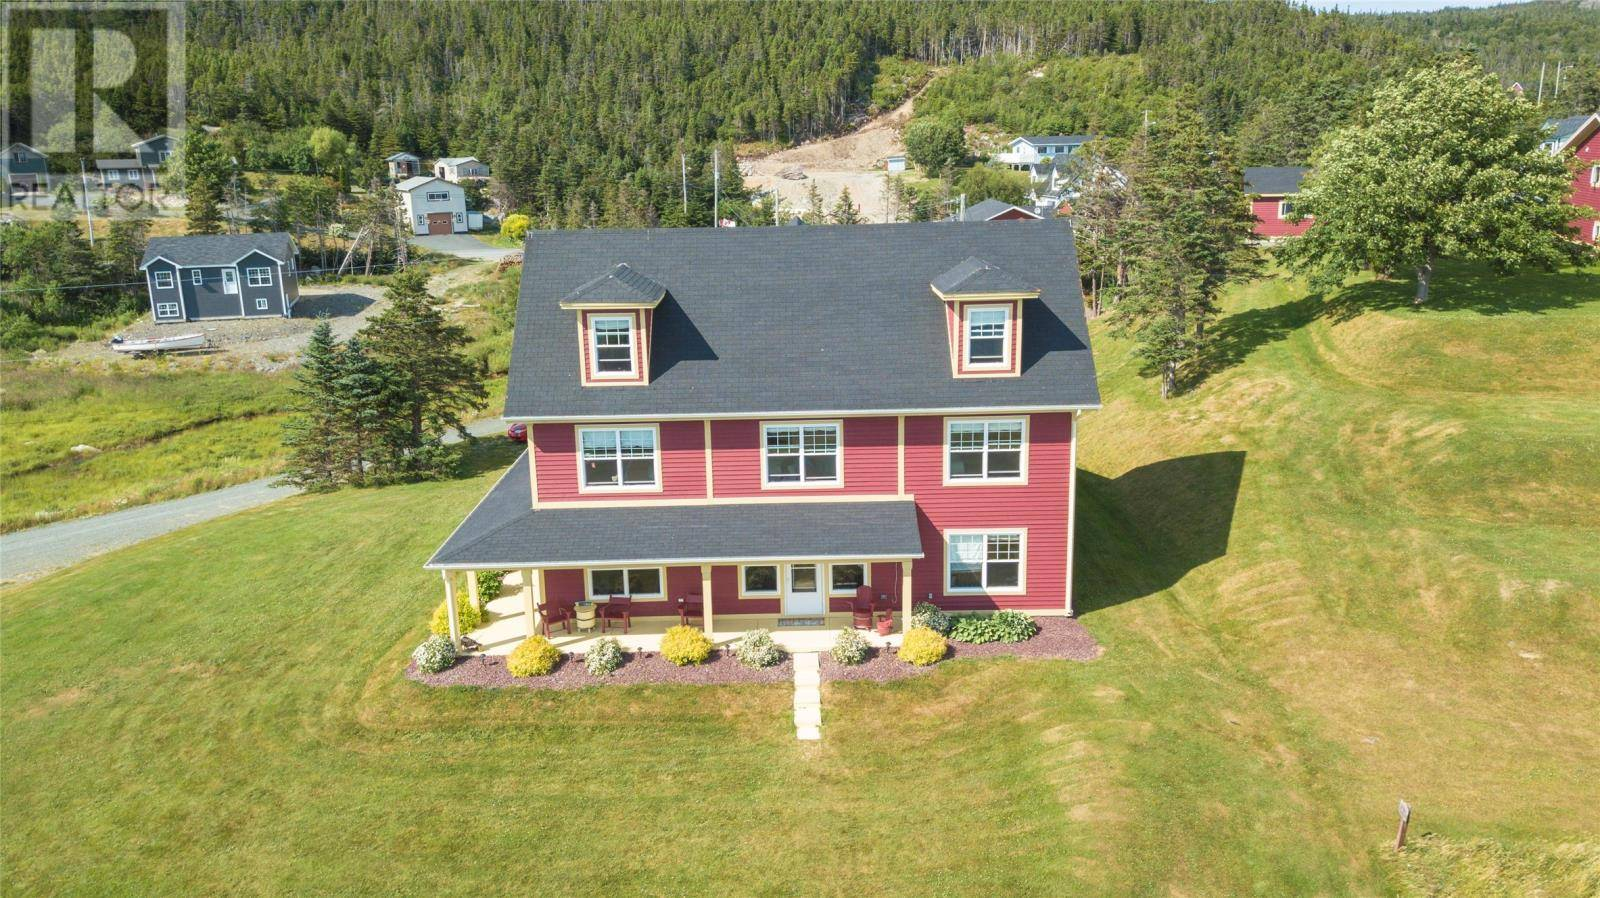 House for sale at 24 Bread And Cheese Rd Bay Bulls Newfoundland - MLS: 1207470